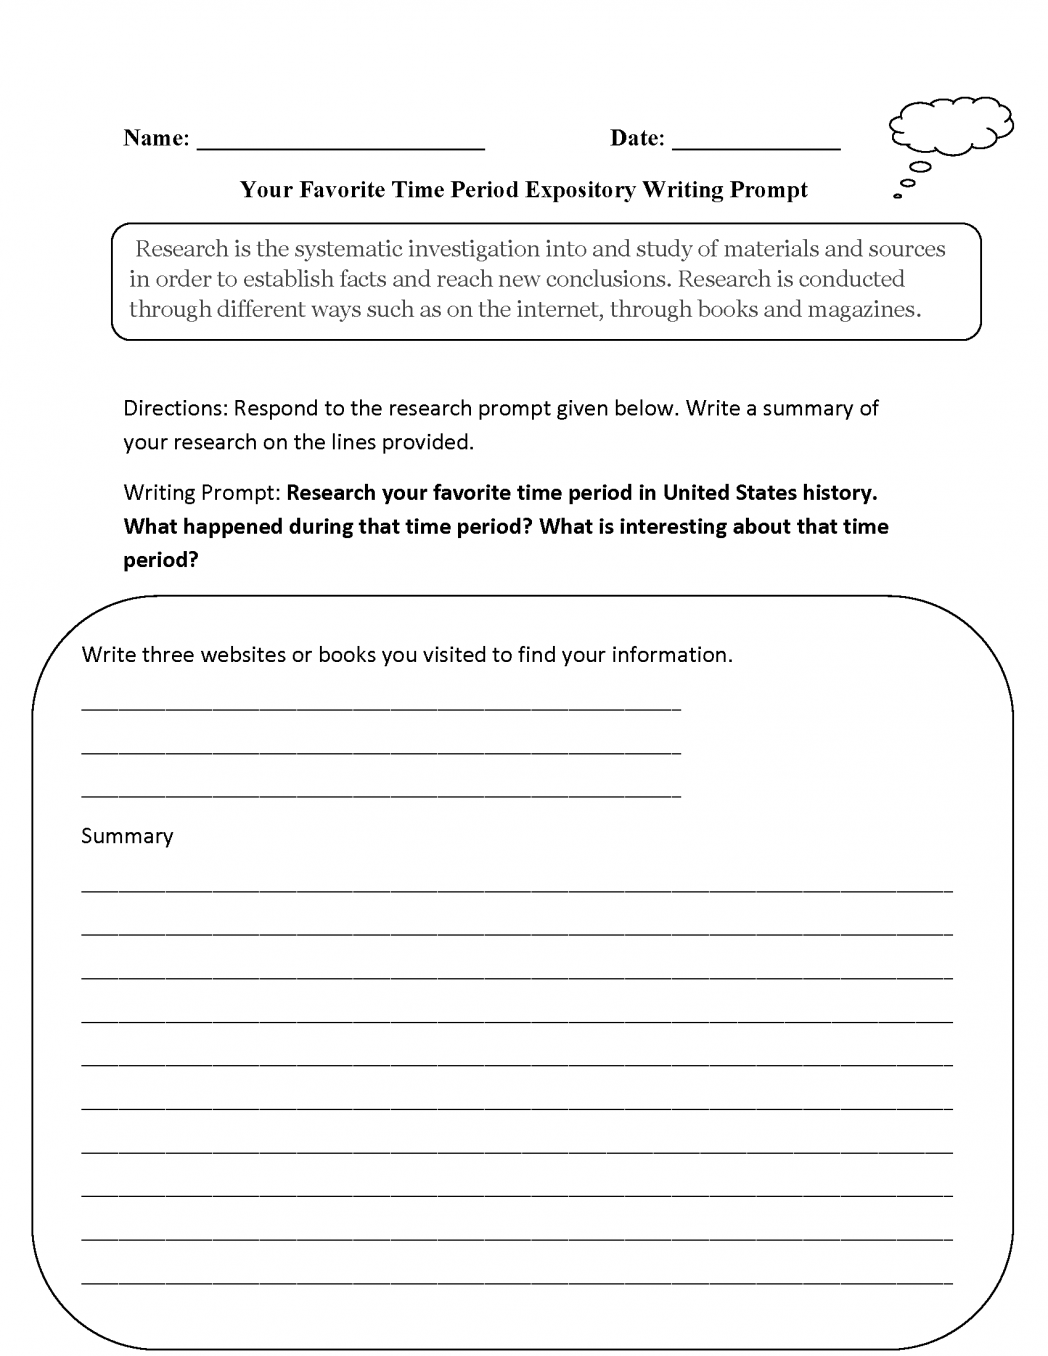 018 Essay Example Good Informative Topics Prompts Favorite Time Period Expository Writing P To Write An On The Topic Of Immigration Remarkable For 5th Grade Paper College Middle School